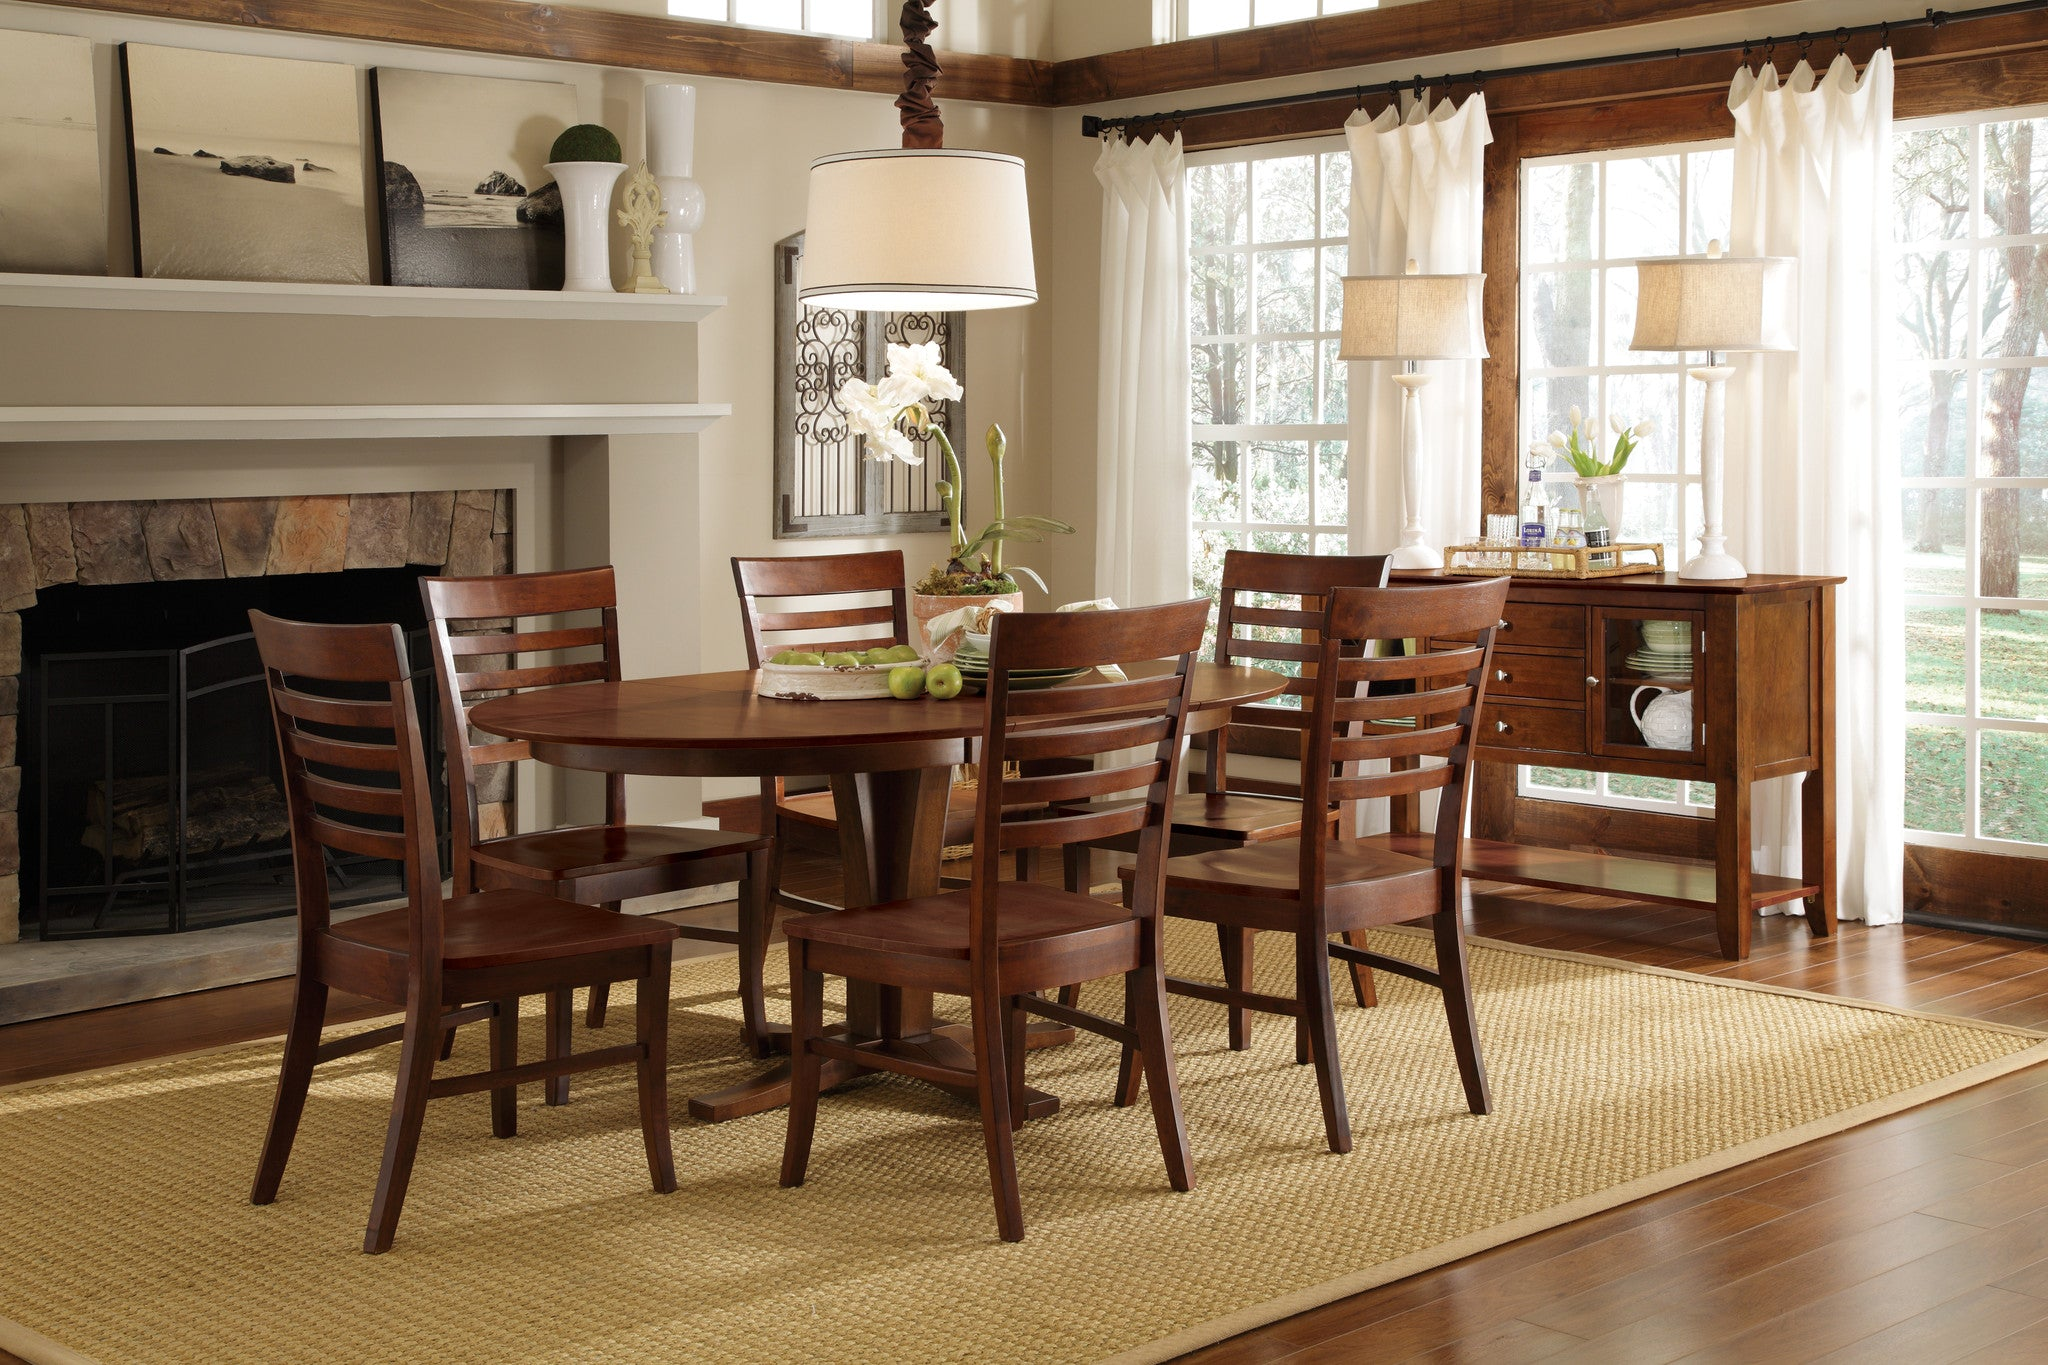 Roma Unfinished Hardwood Dining Chair With Upholstered